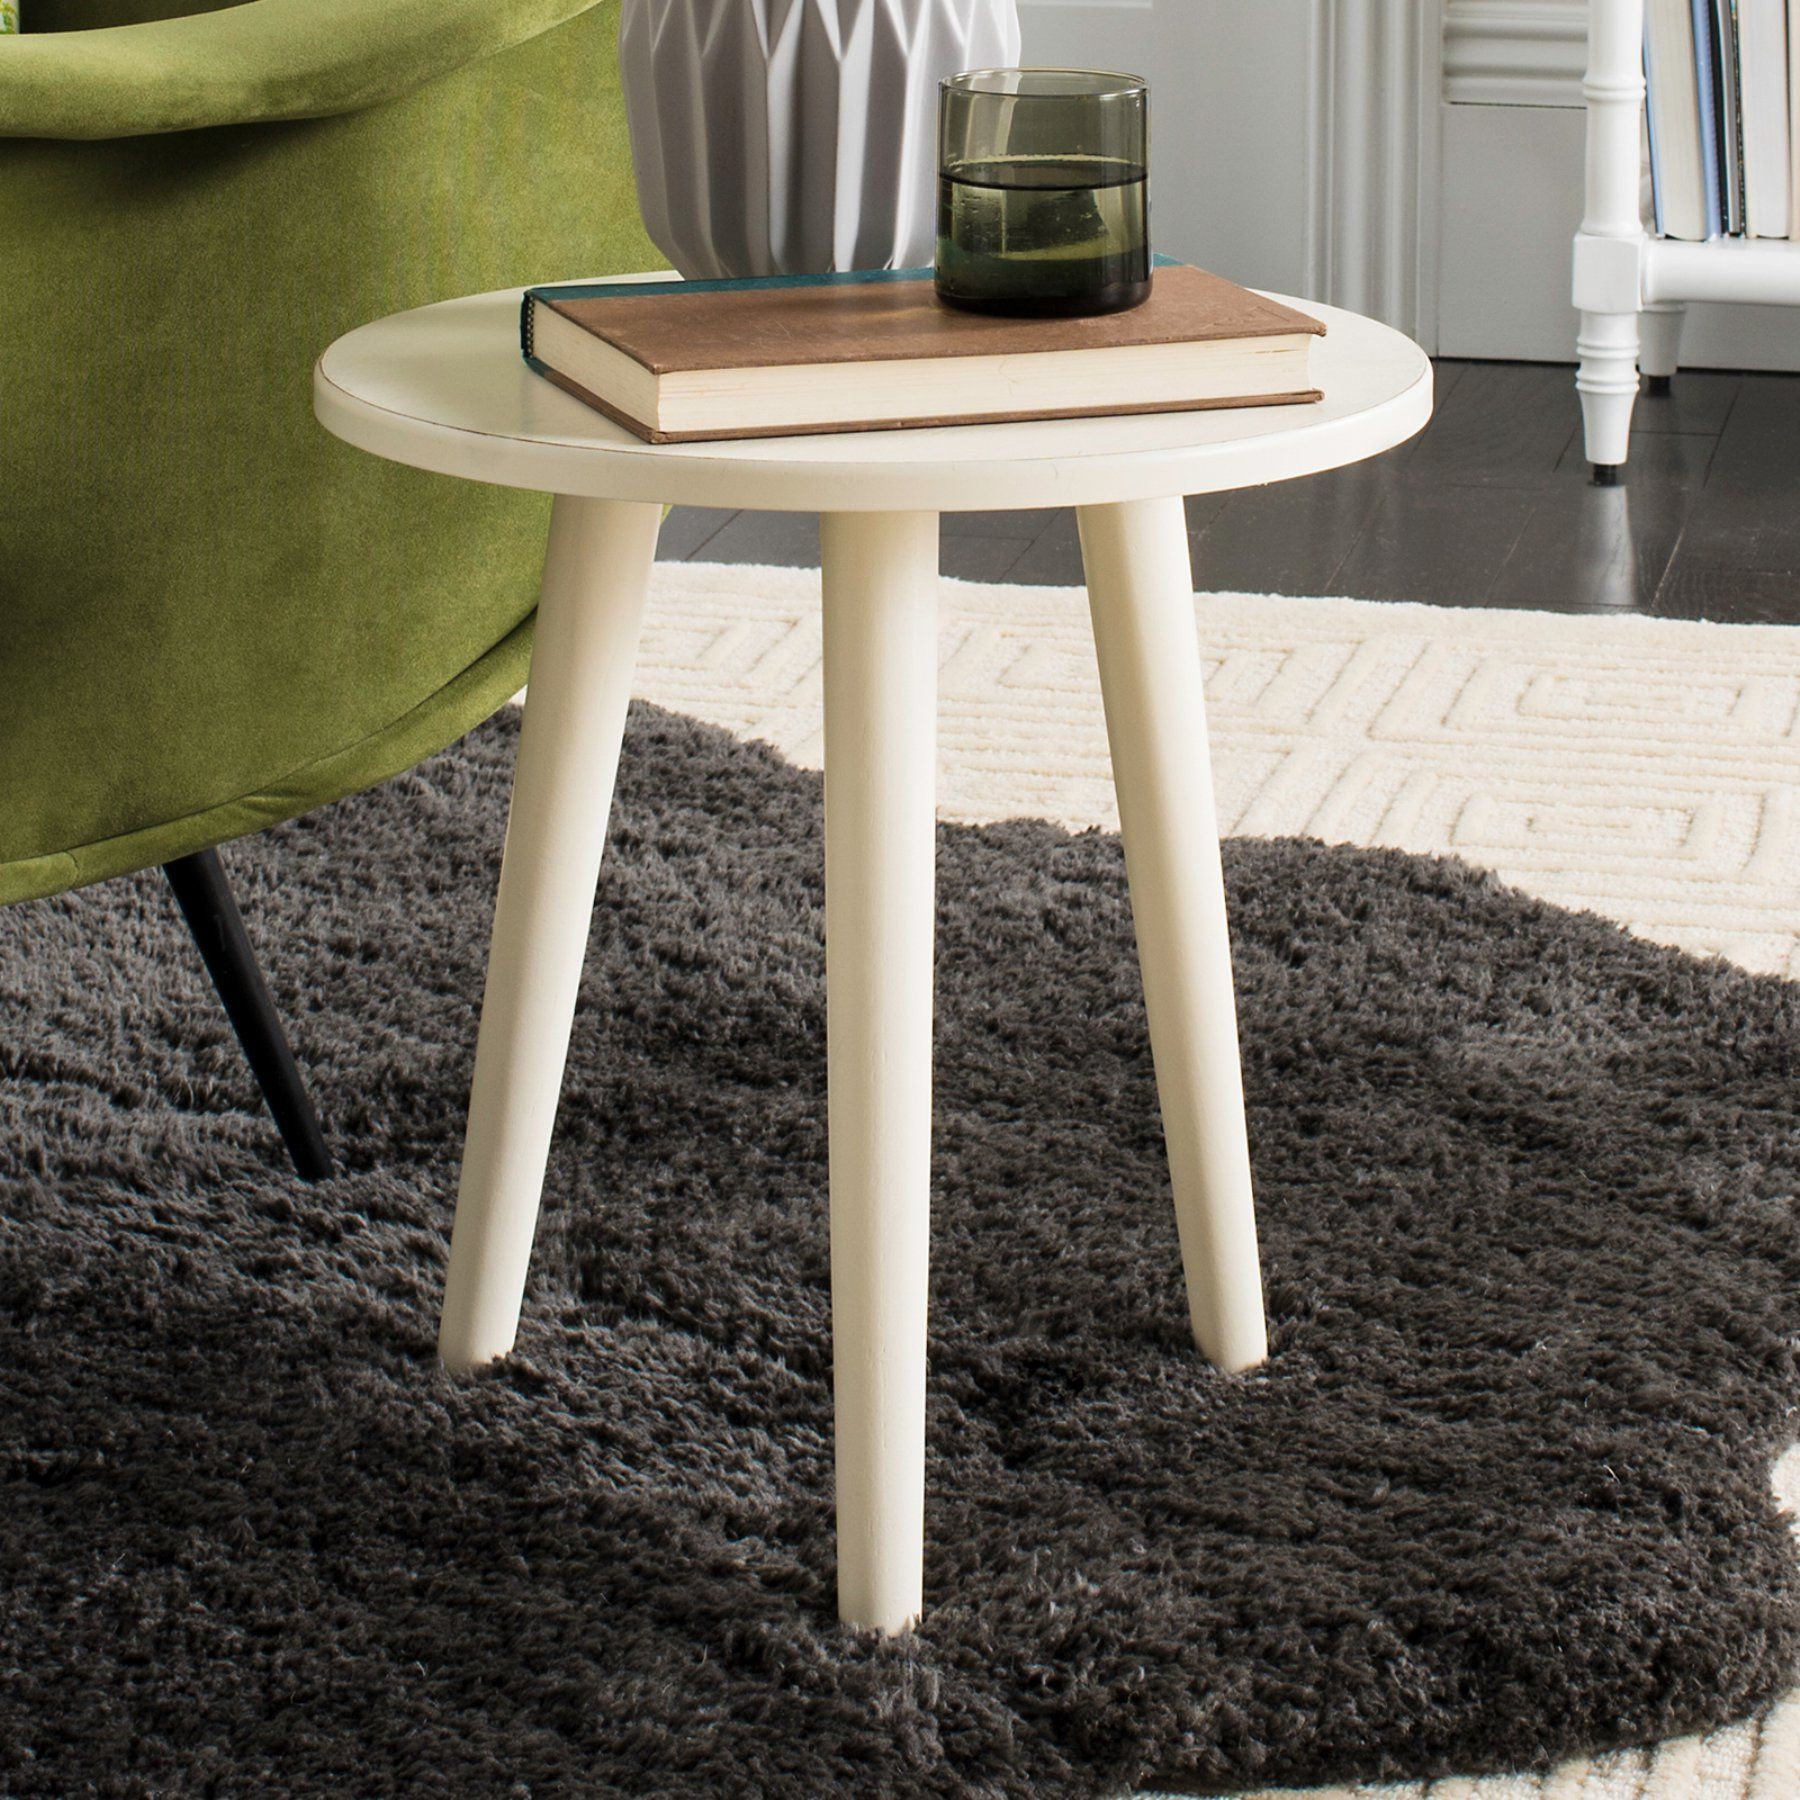 safavieh orion round accent table products small modern nevina tall white bedside cream end tables narrow lamp best living room furniture trunk side lamps laminate door strip